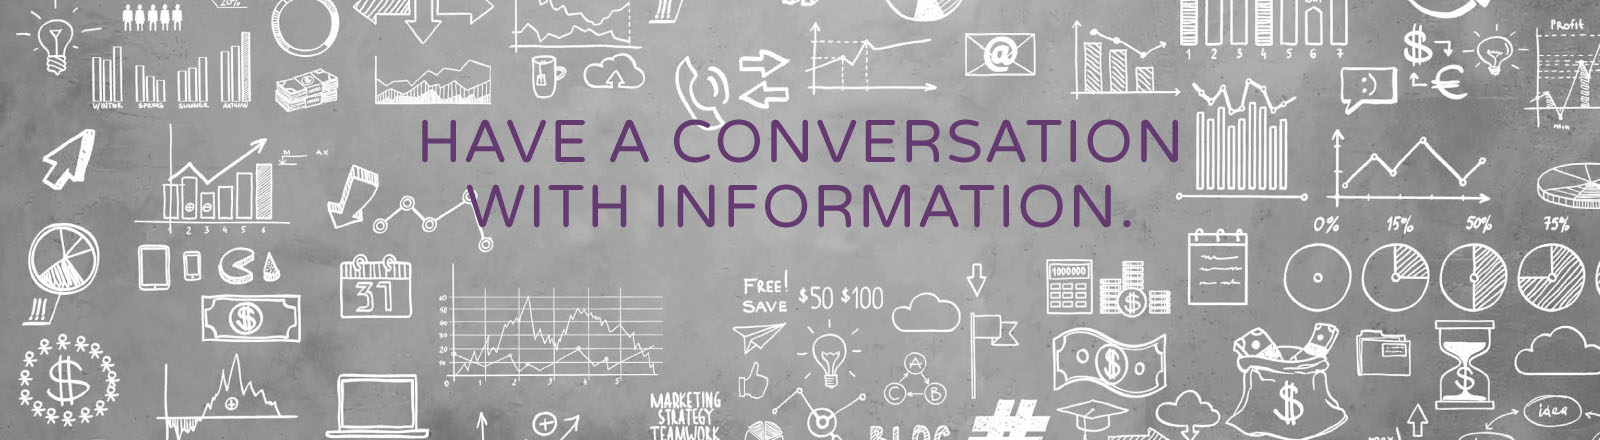 Have a conversation with information.